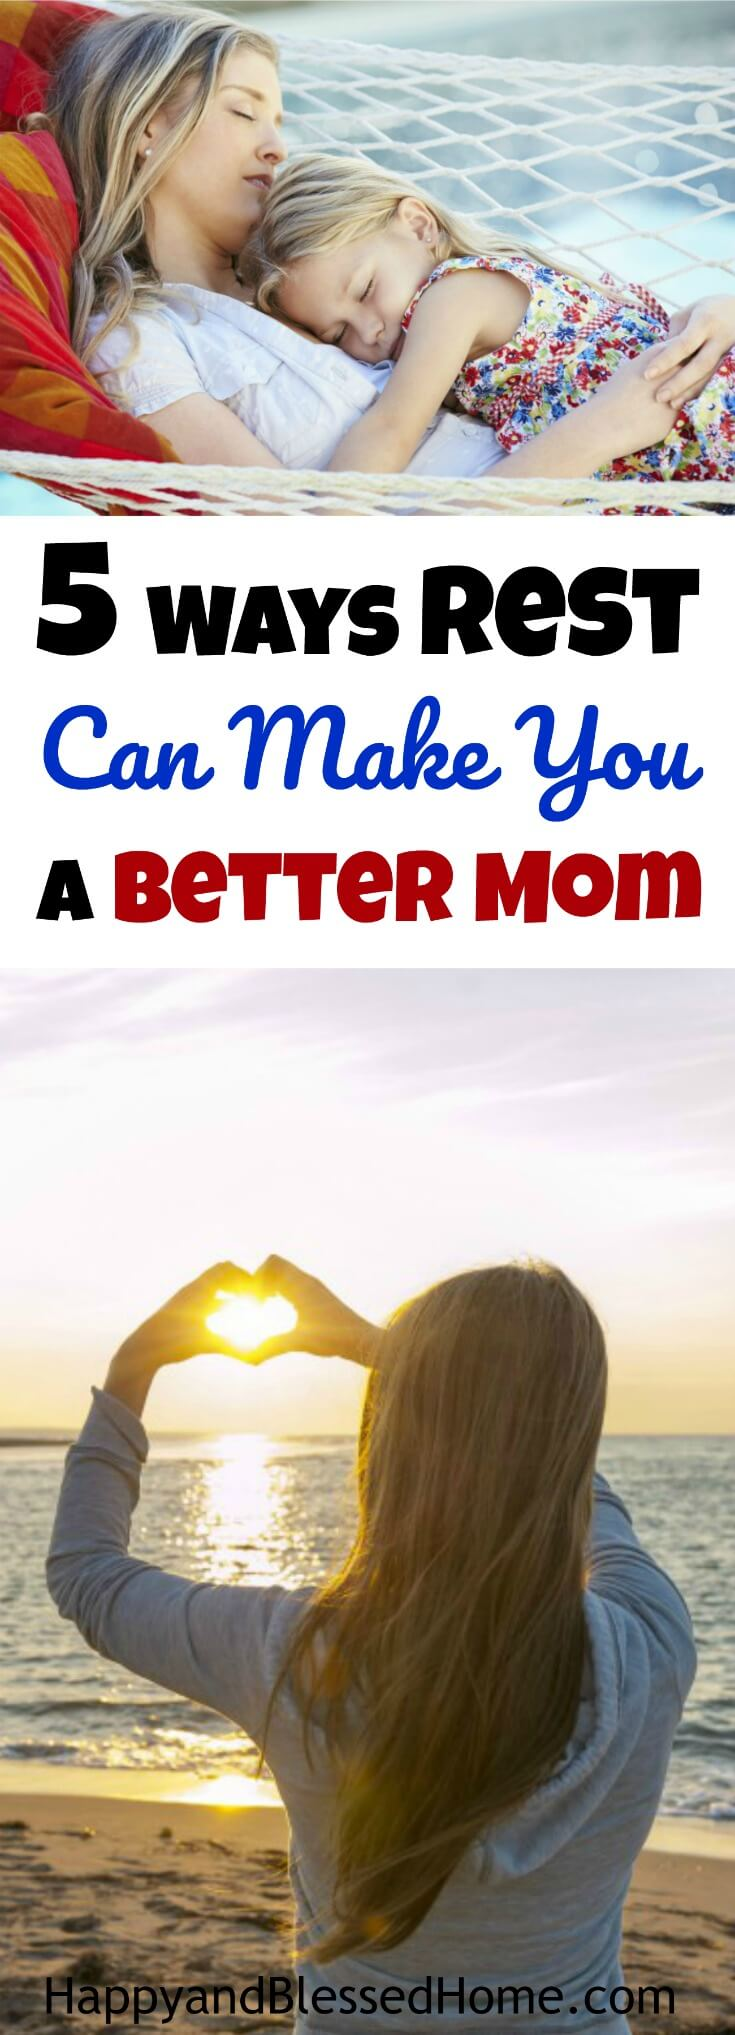 5 Ways Rest Can Make You a Better Mom - with tips on how to fit it IN!